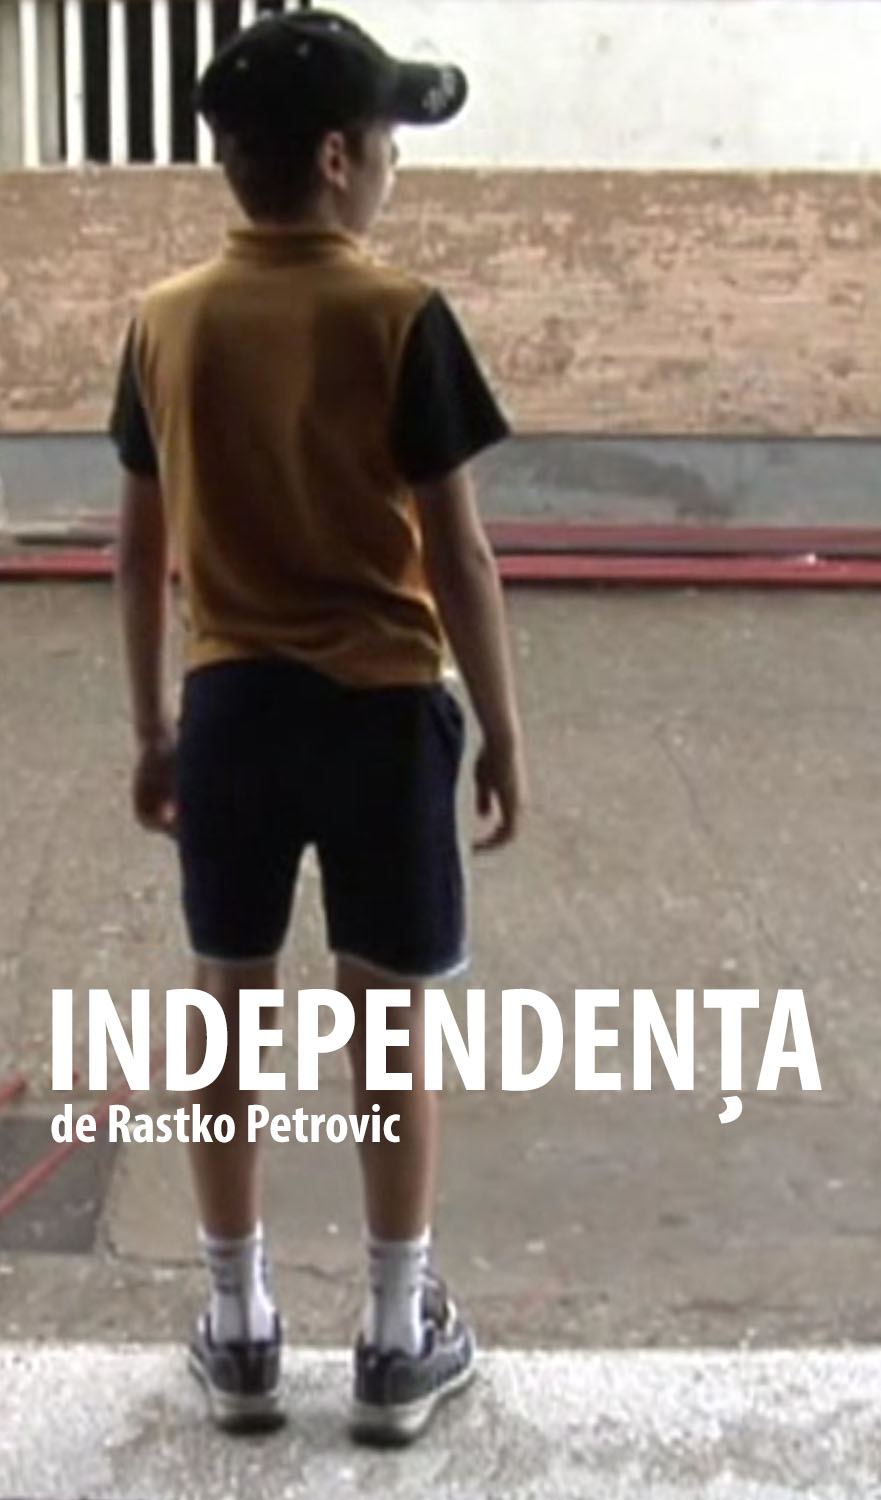 Independeta de Rastko Petrovic - documentar CINEPUB